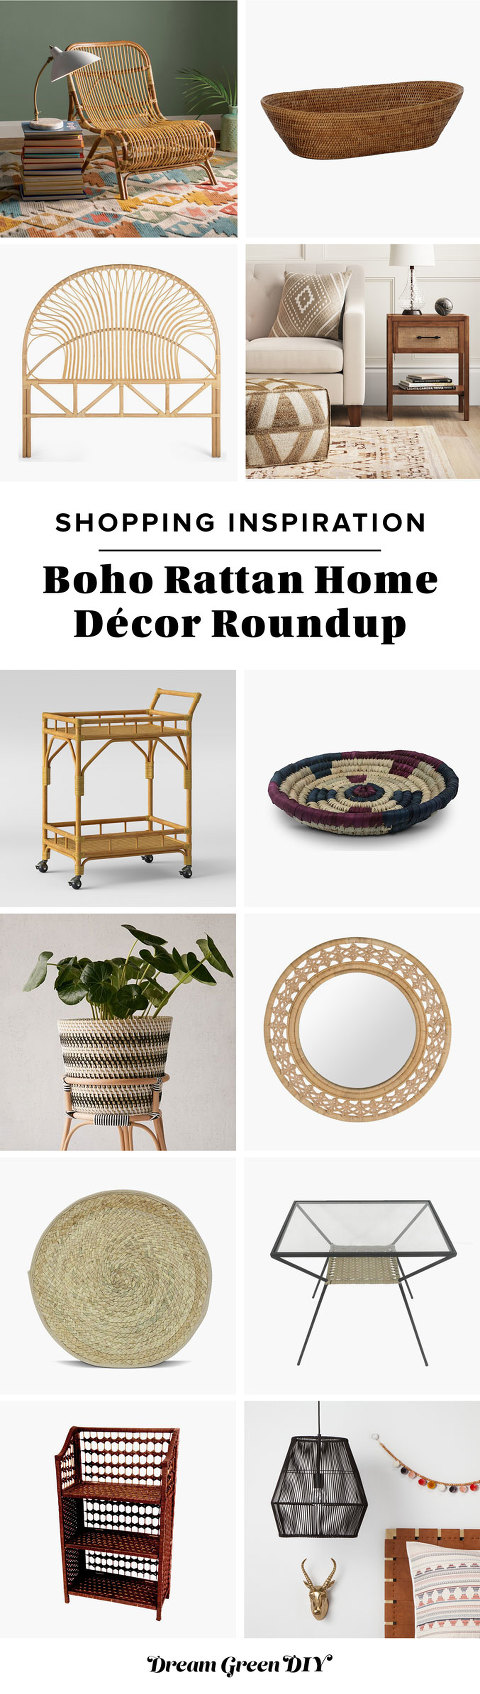 Boho Rattan Home Décor Roundup